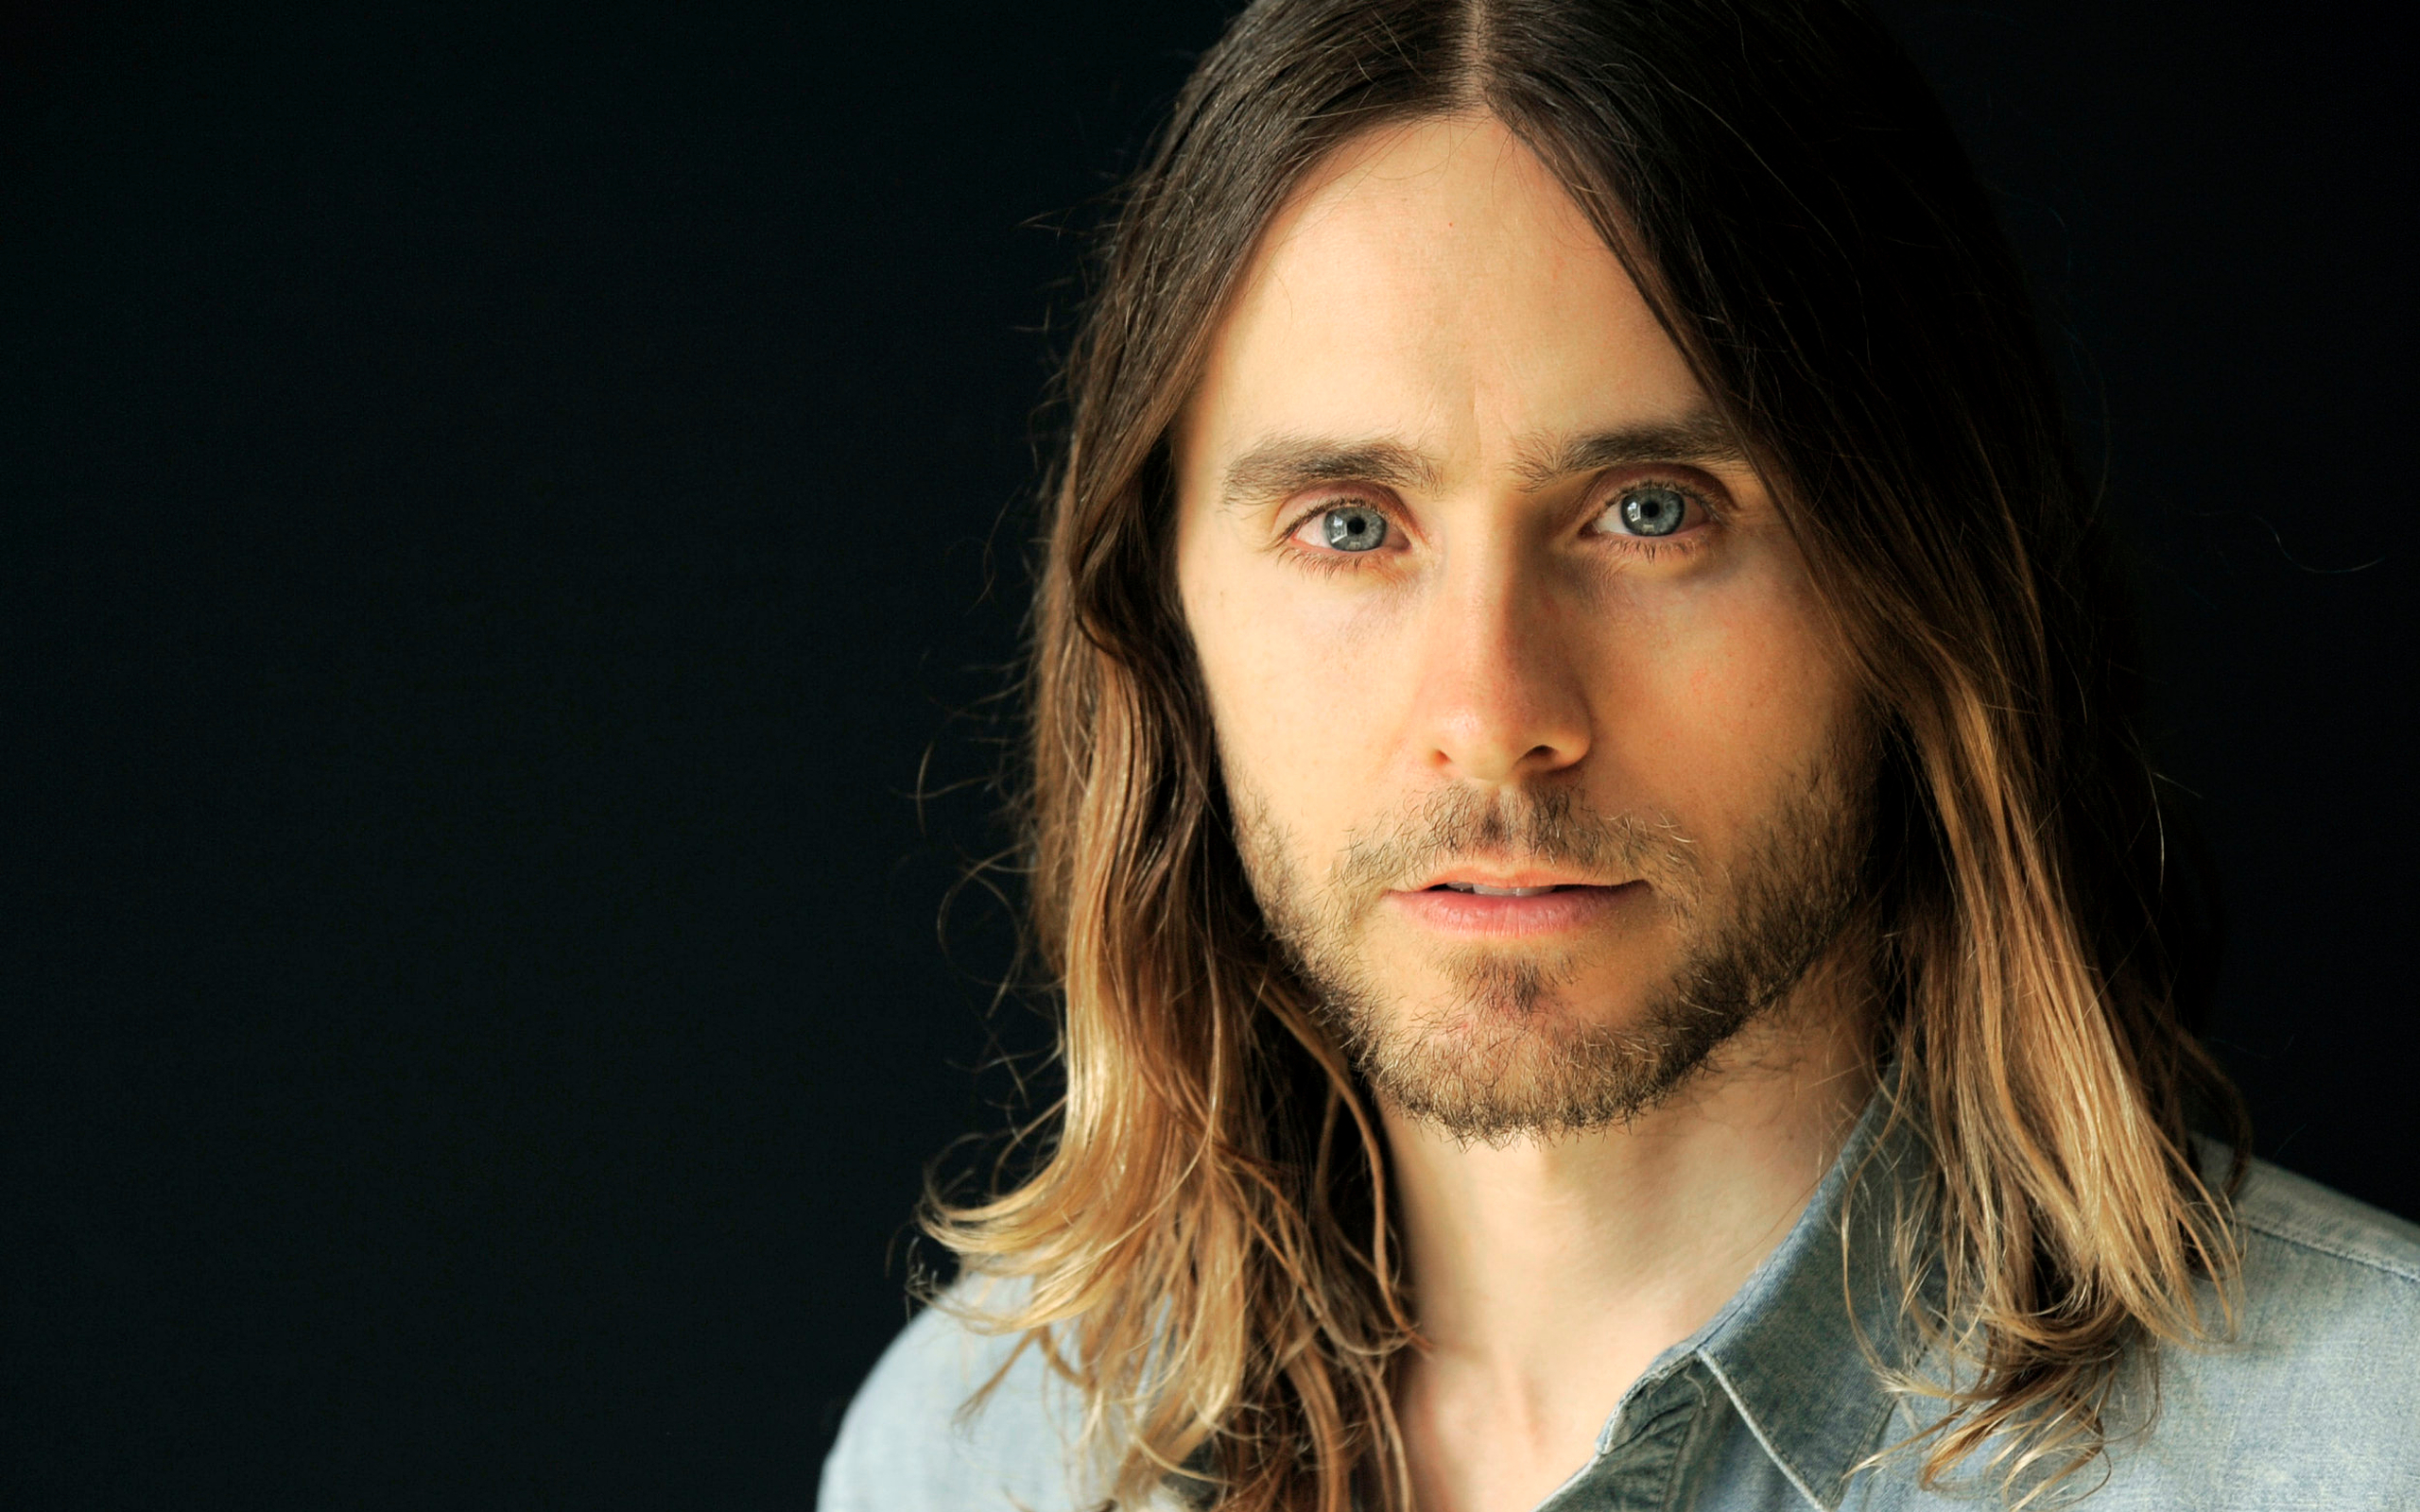 Jared leto images jared leto hd wallpaper and background photos - Celebrity Jared Leto Actor American Wallpaper